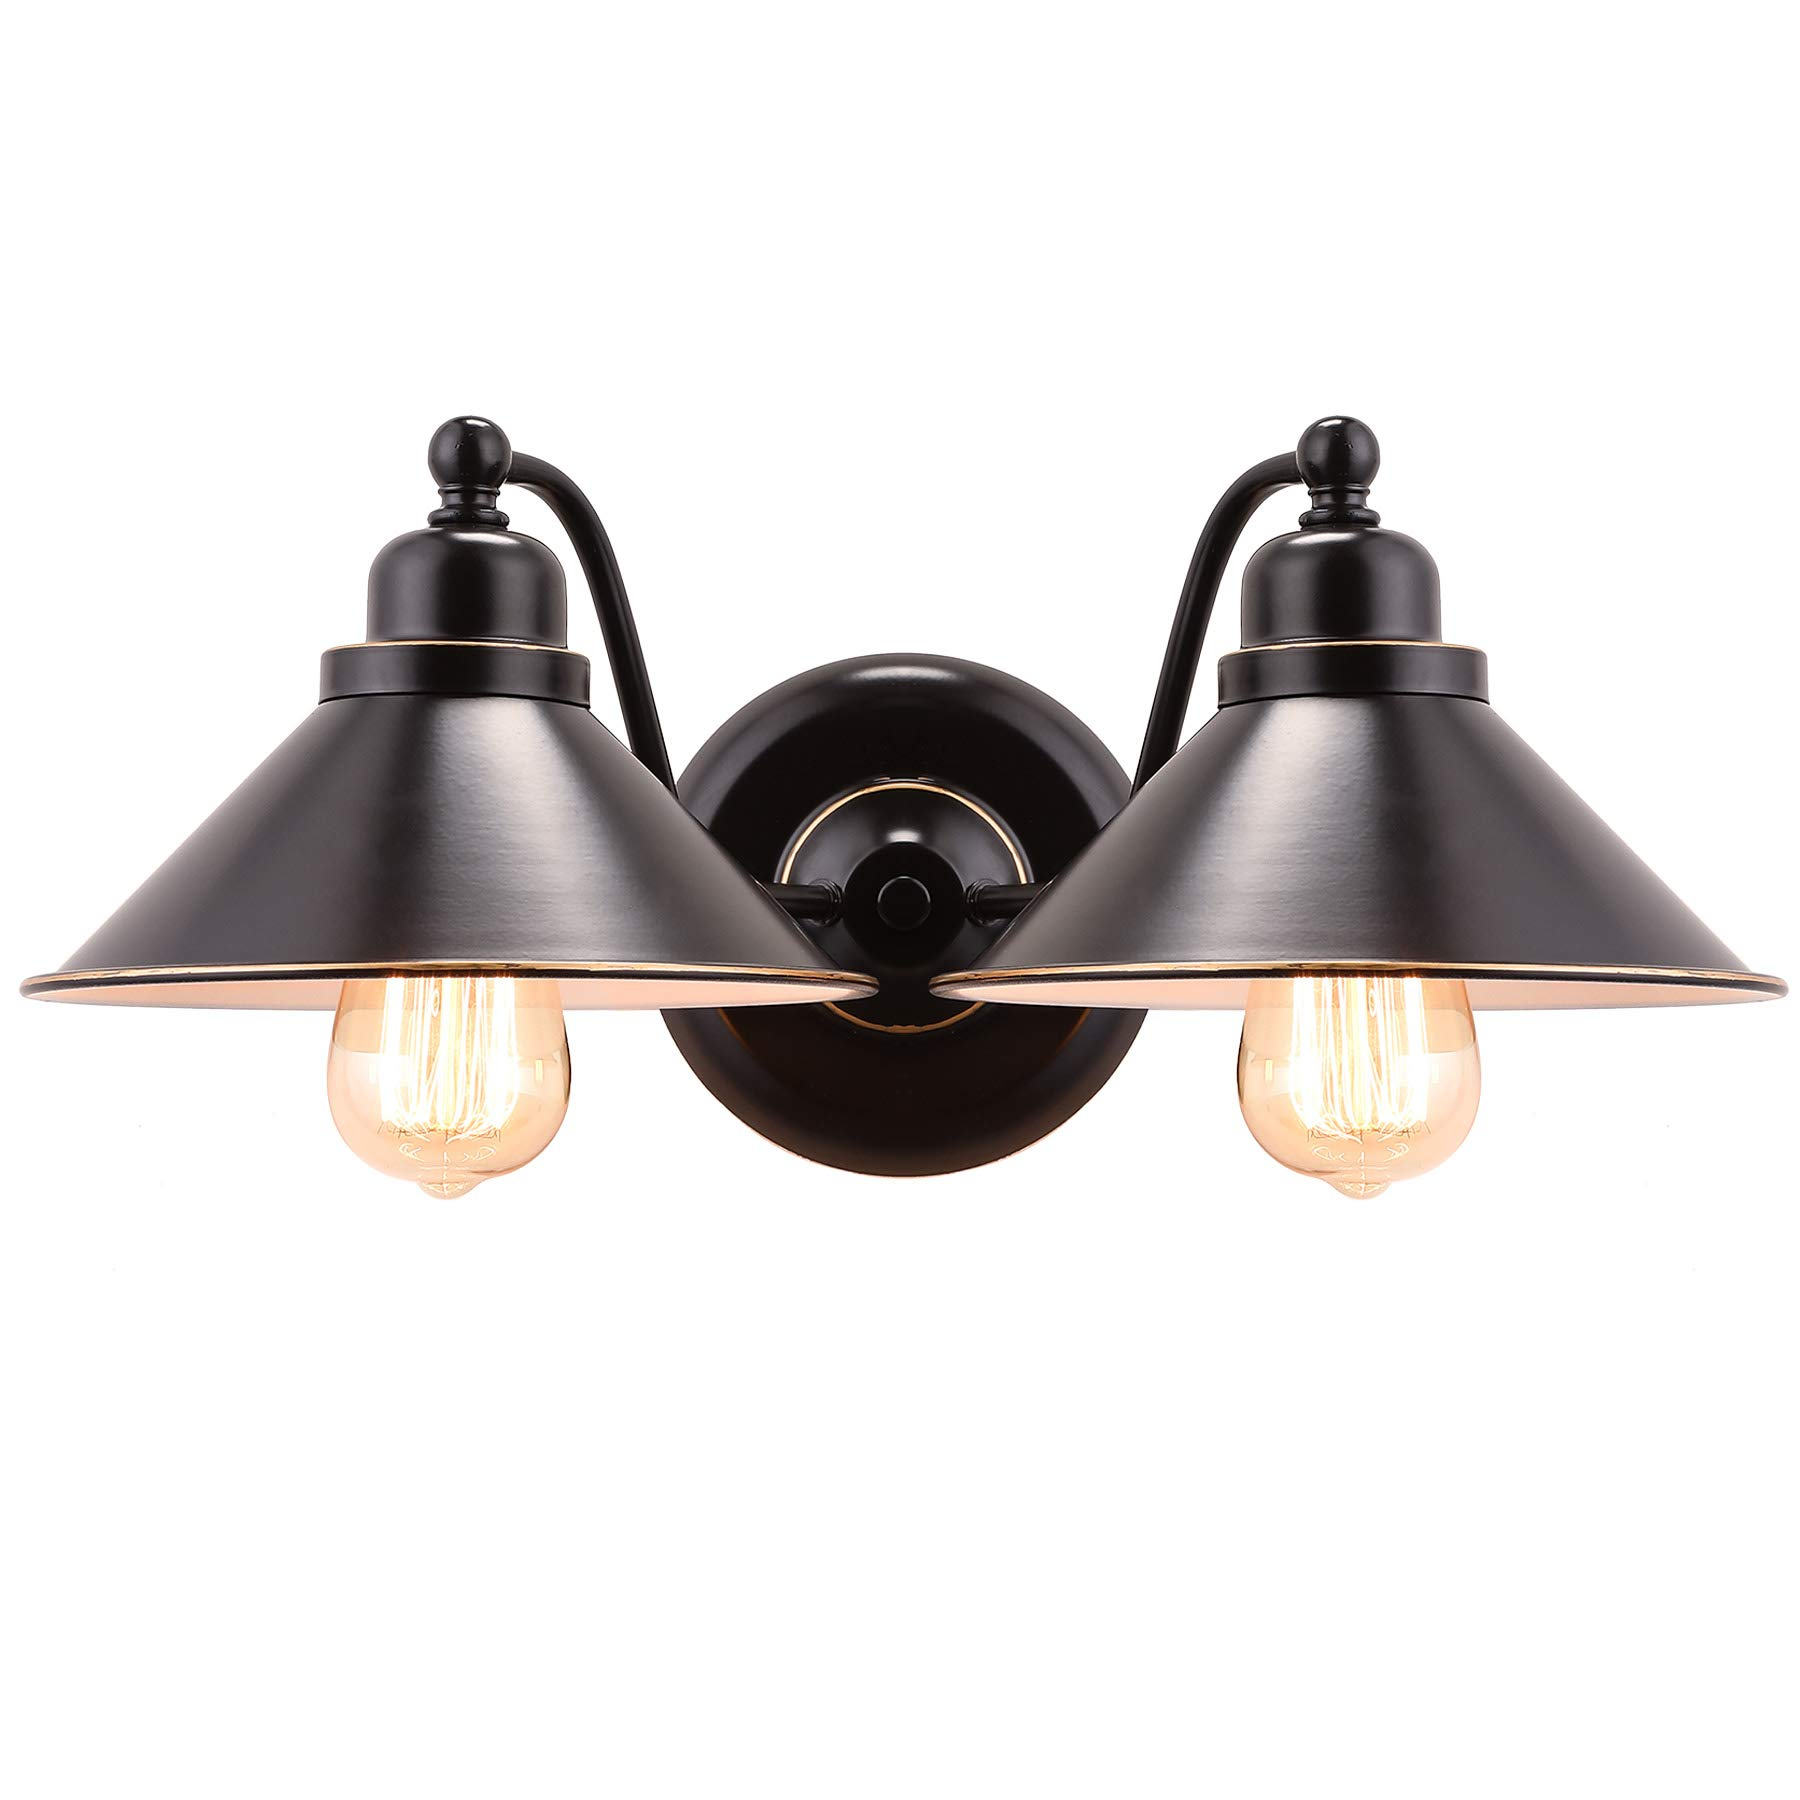 CO-Z 2 Light Wall Sconce in Oil Rubbed Bronze Finish, Vintage Industrial Style Sconces Wall Lighting Fixture, Metal Wall Mount Lamp for Bathroom Bedroom Reading Cafe, ETL. (2 Light)